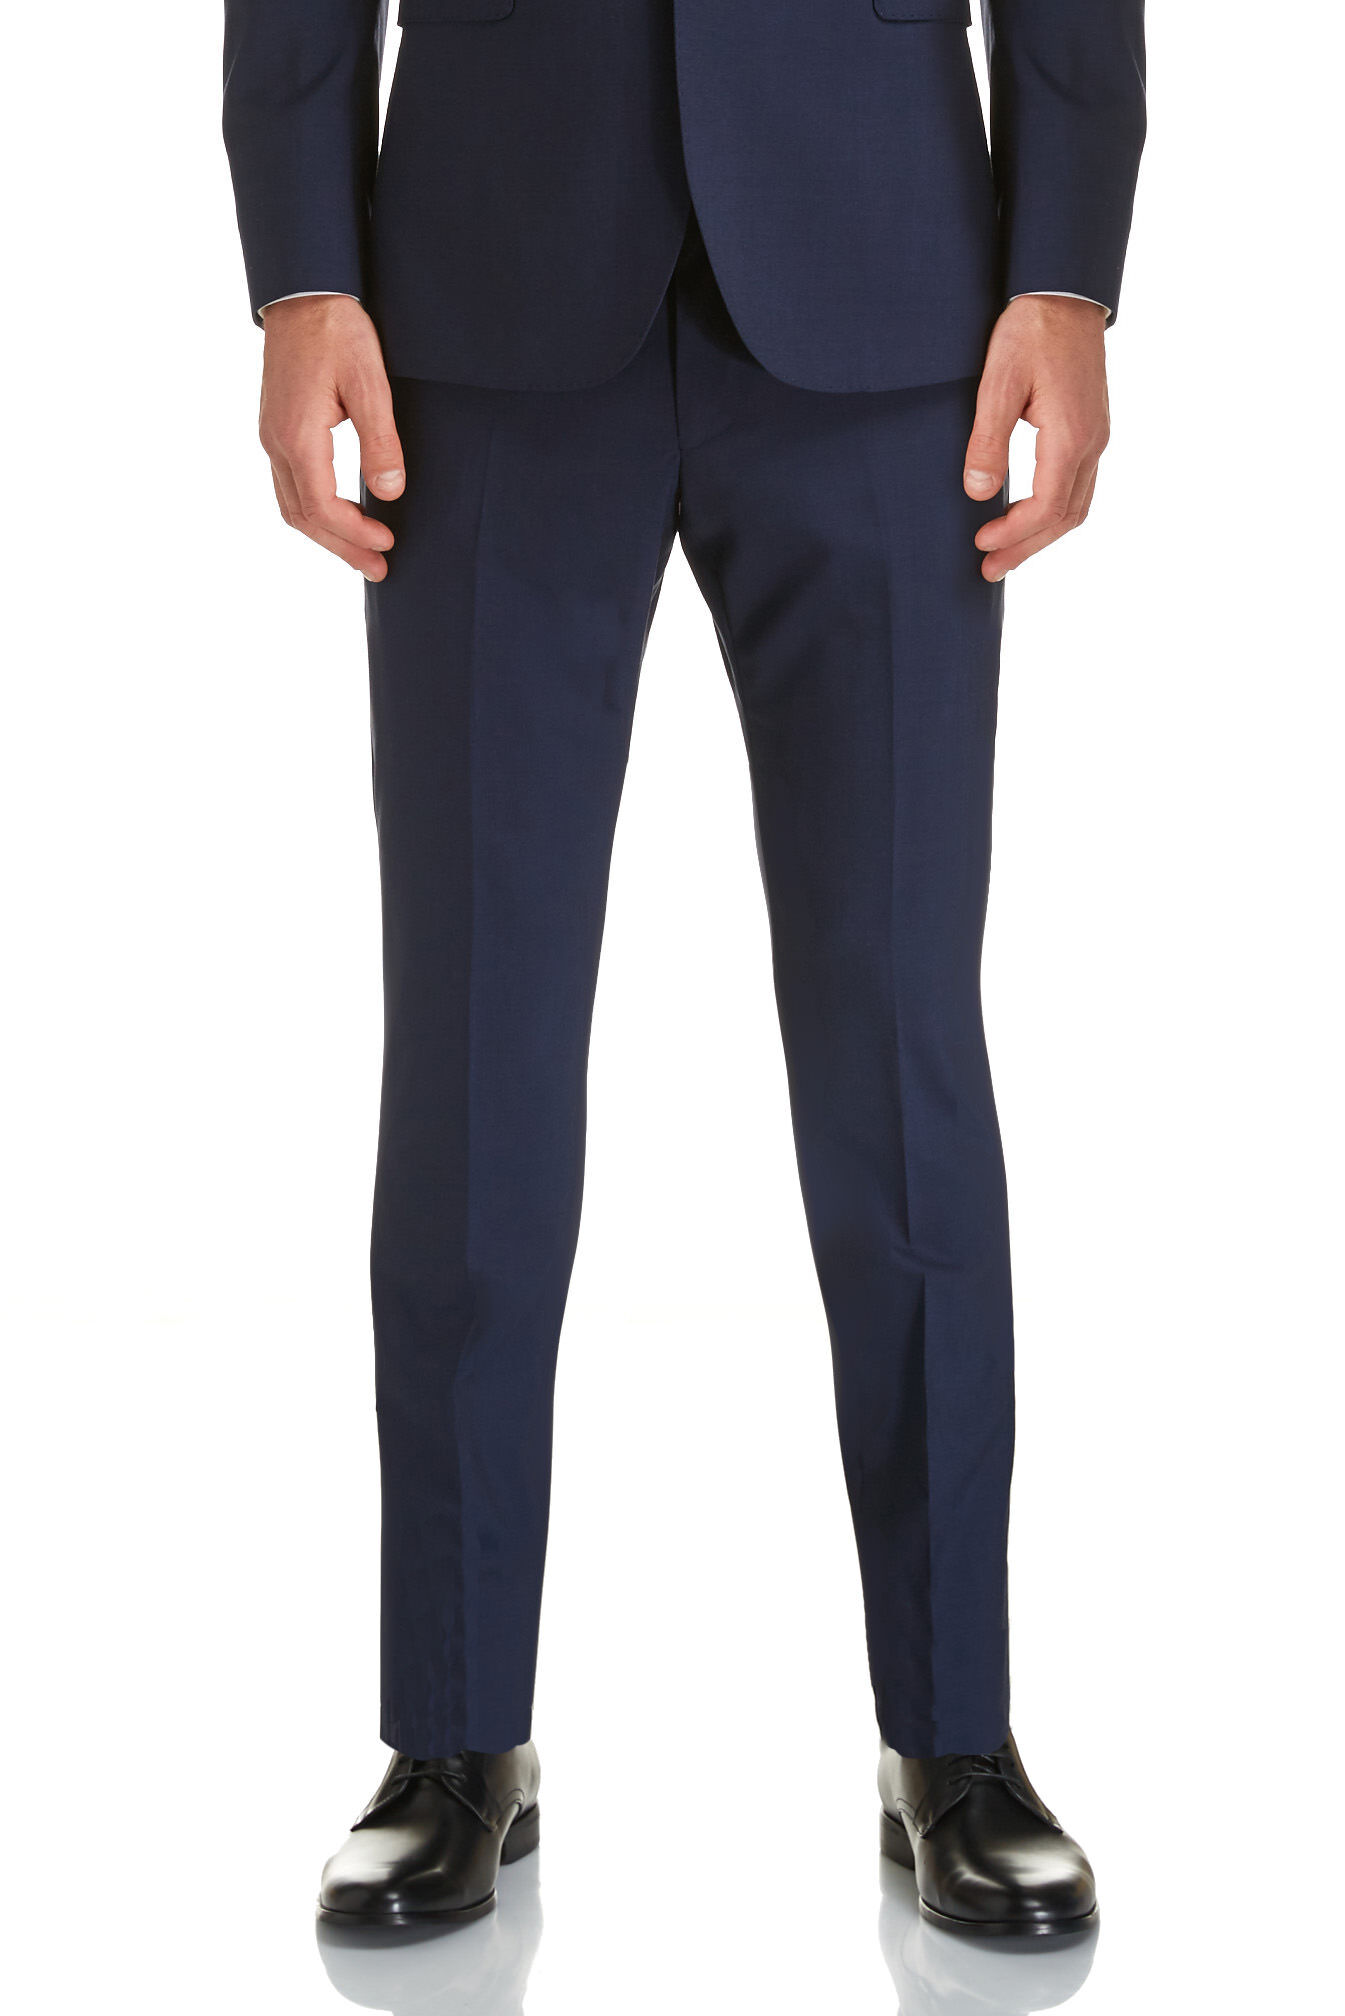 saba contemporary suit pant slimnavy35